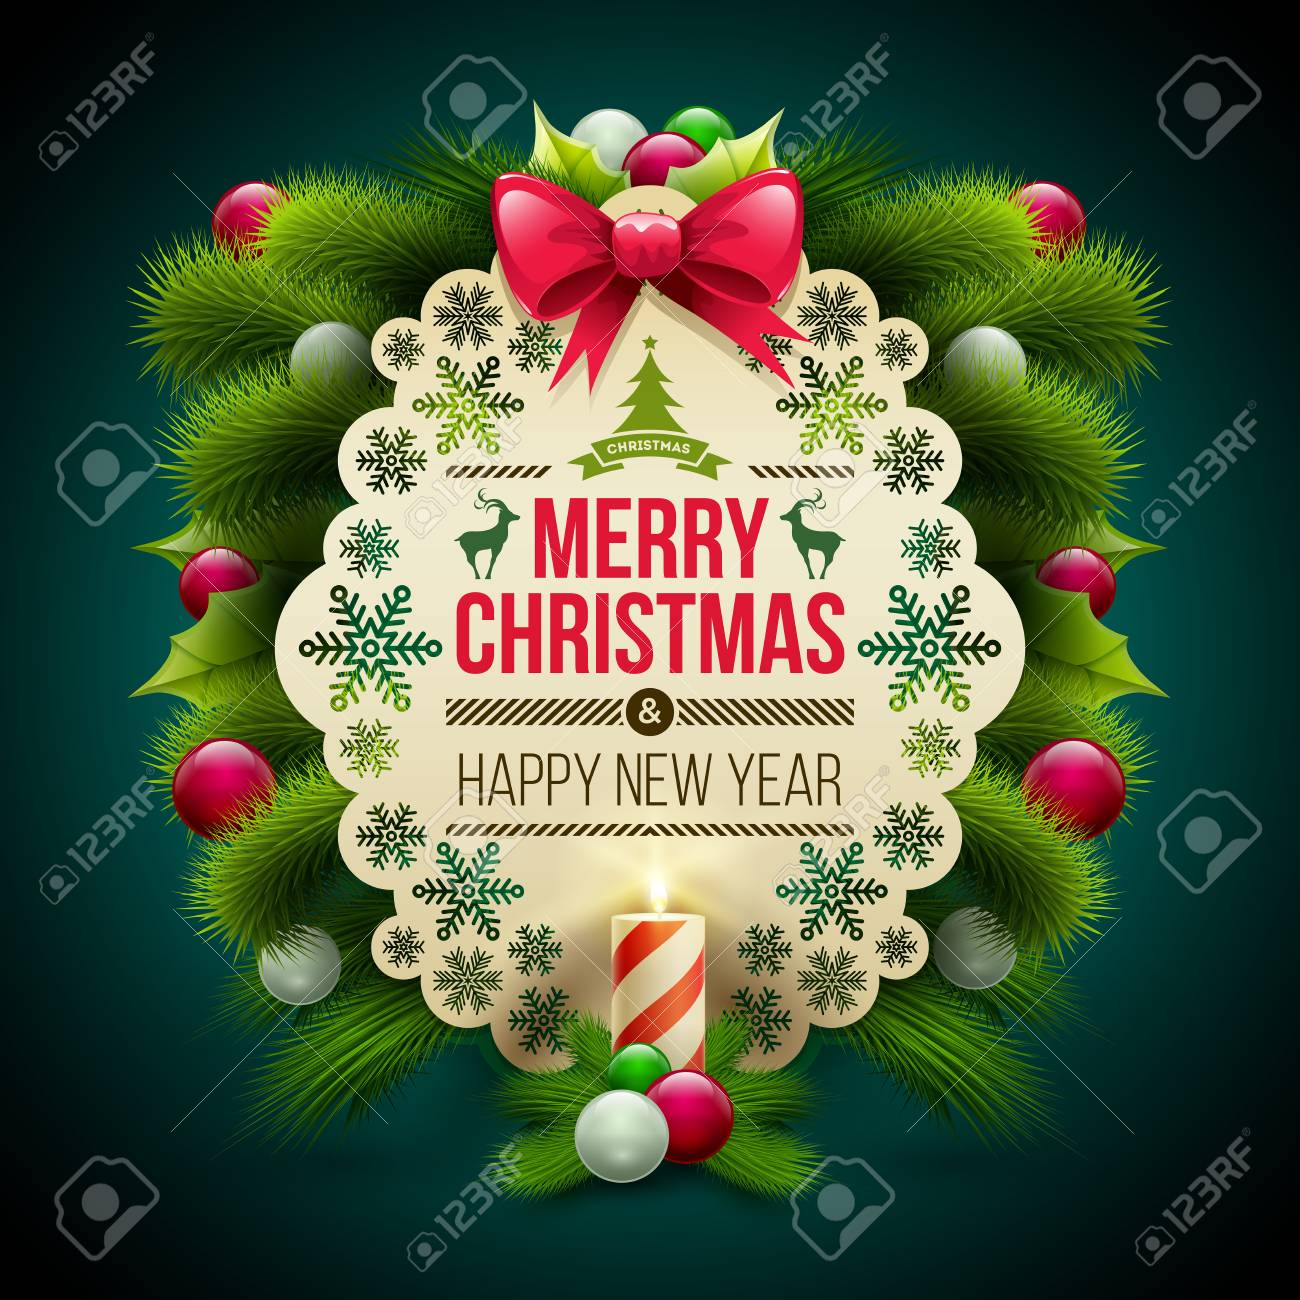 Christmas And New Year Greeting Message Card With Ornaments